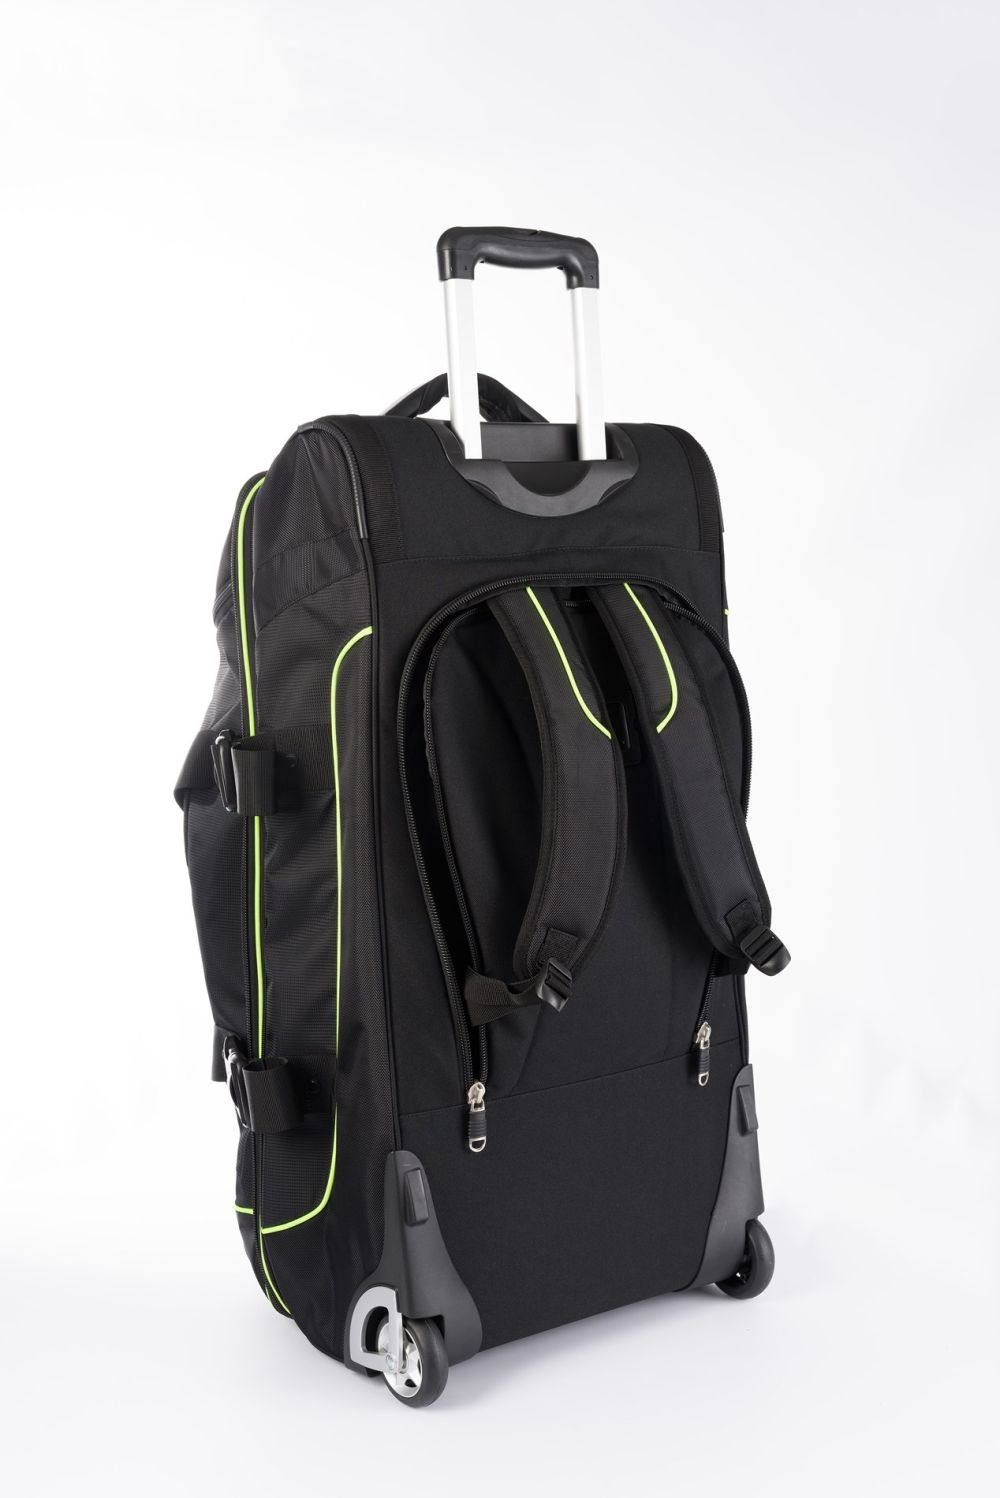 TOP TEN Trolley bag - black/green